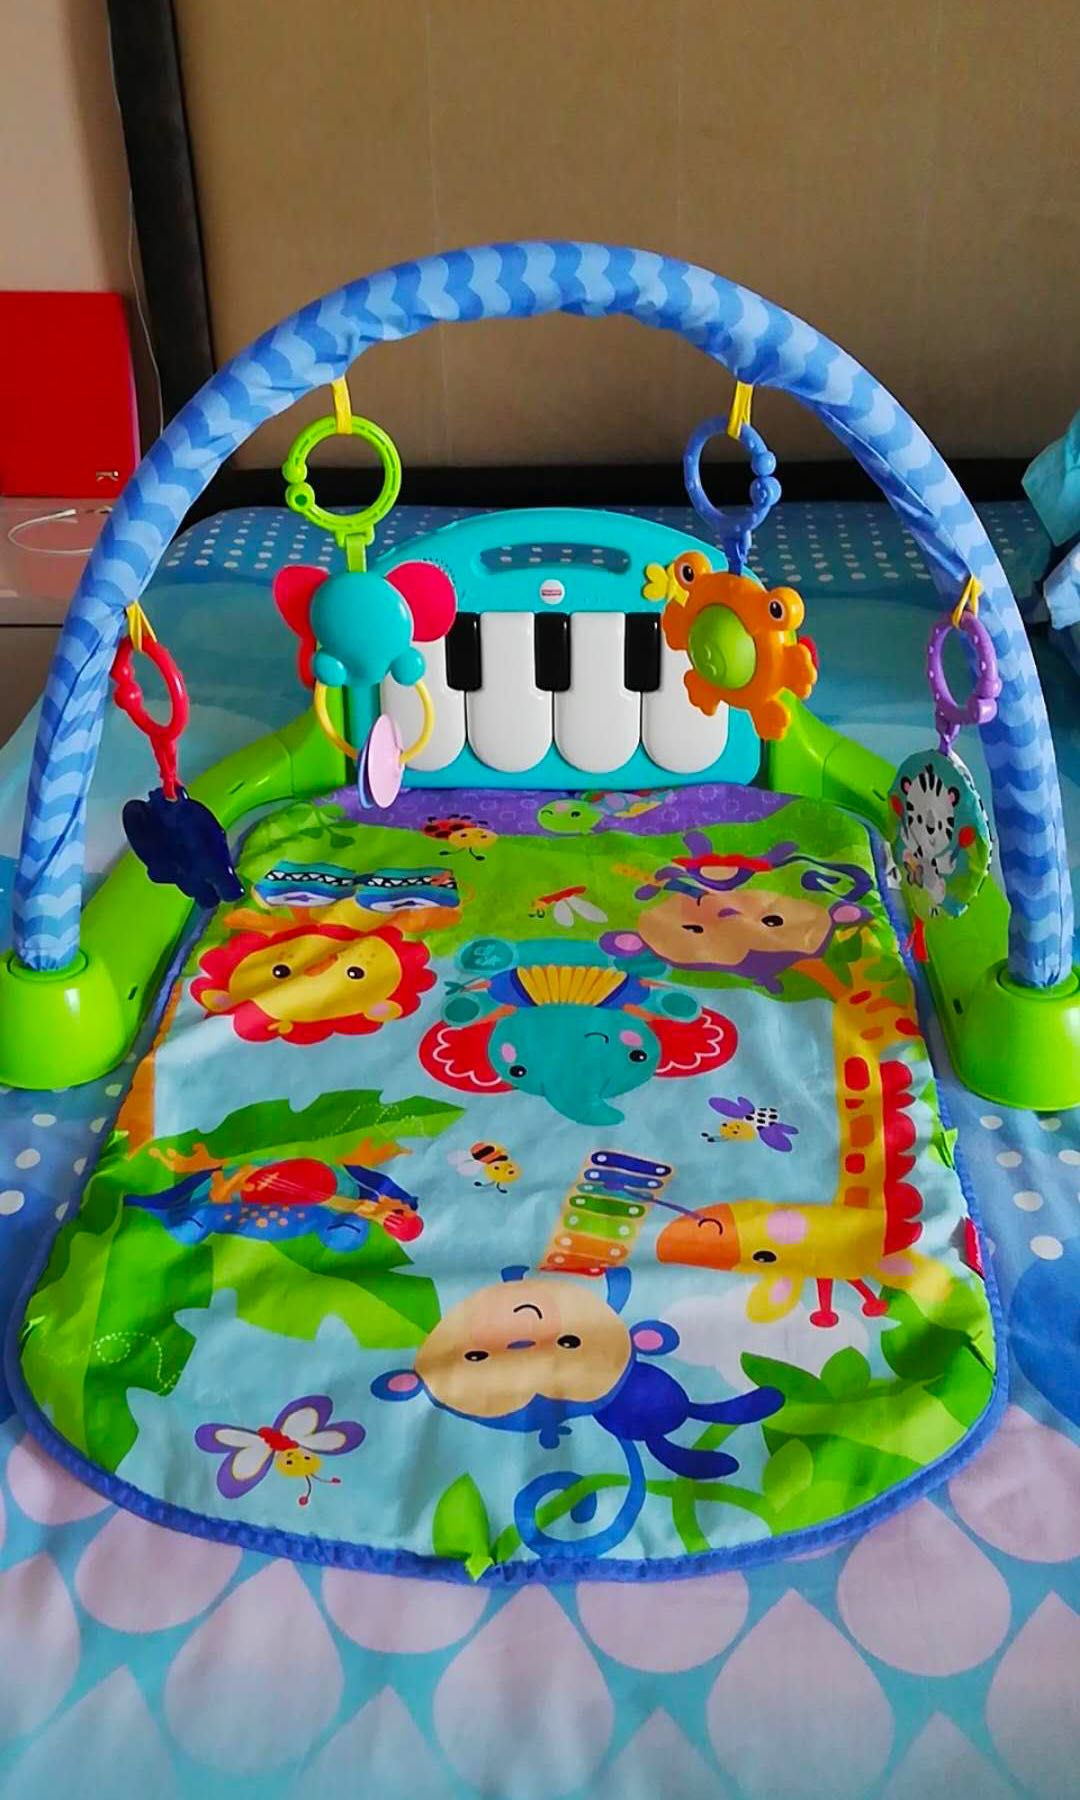 Almost Bn Fisher Price Kick Play Piano Gym Bluegreen Babies